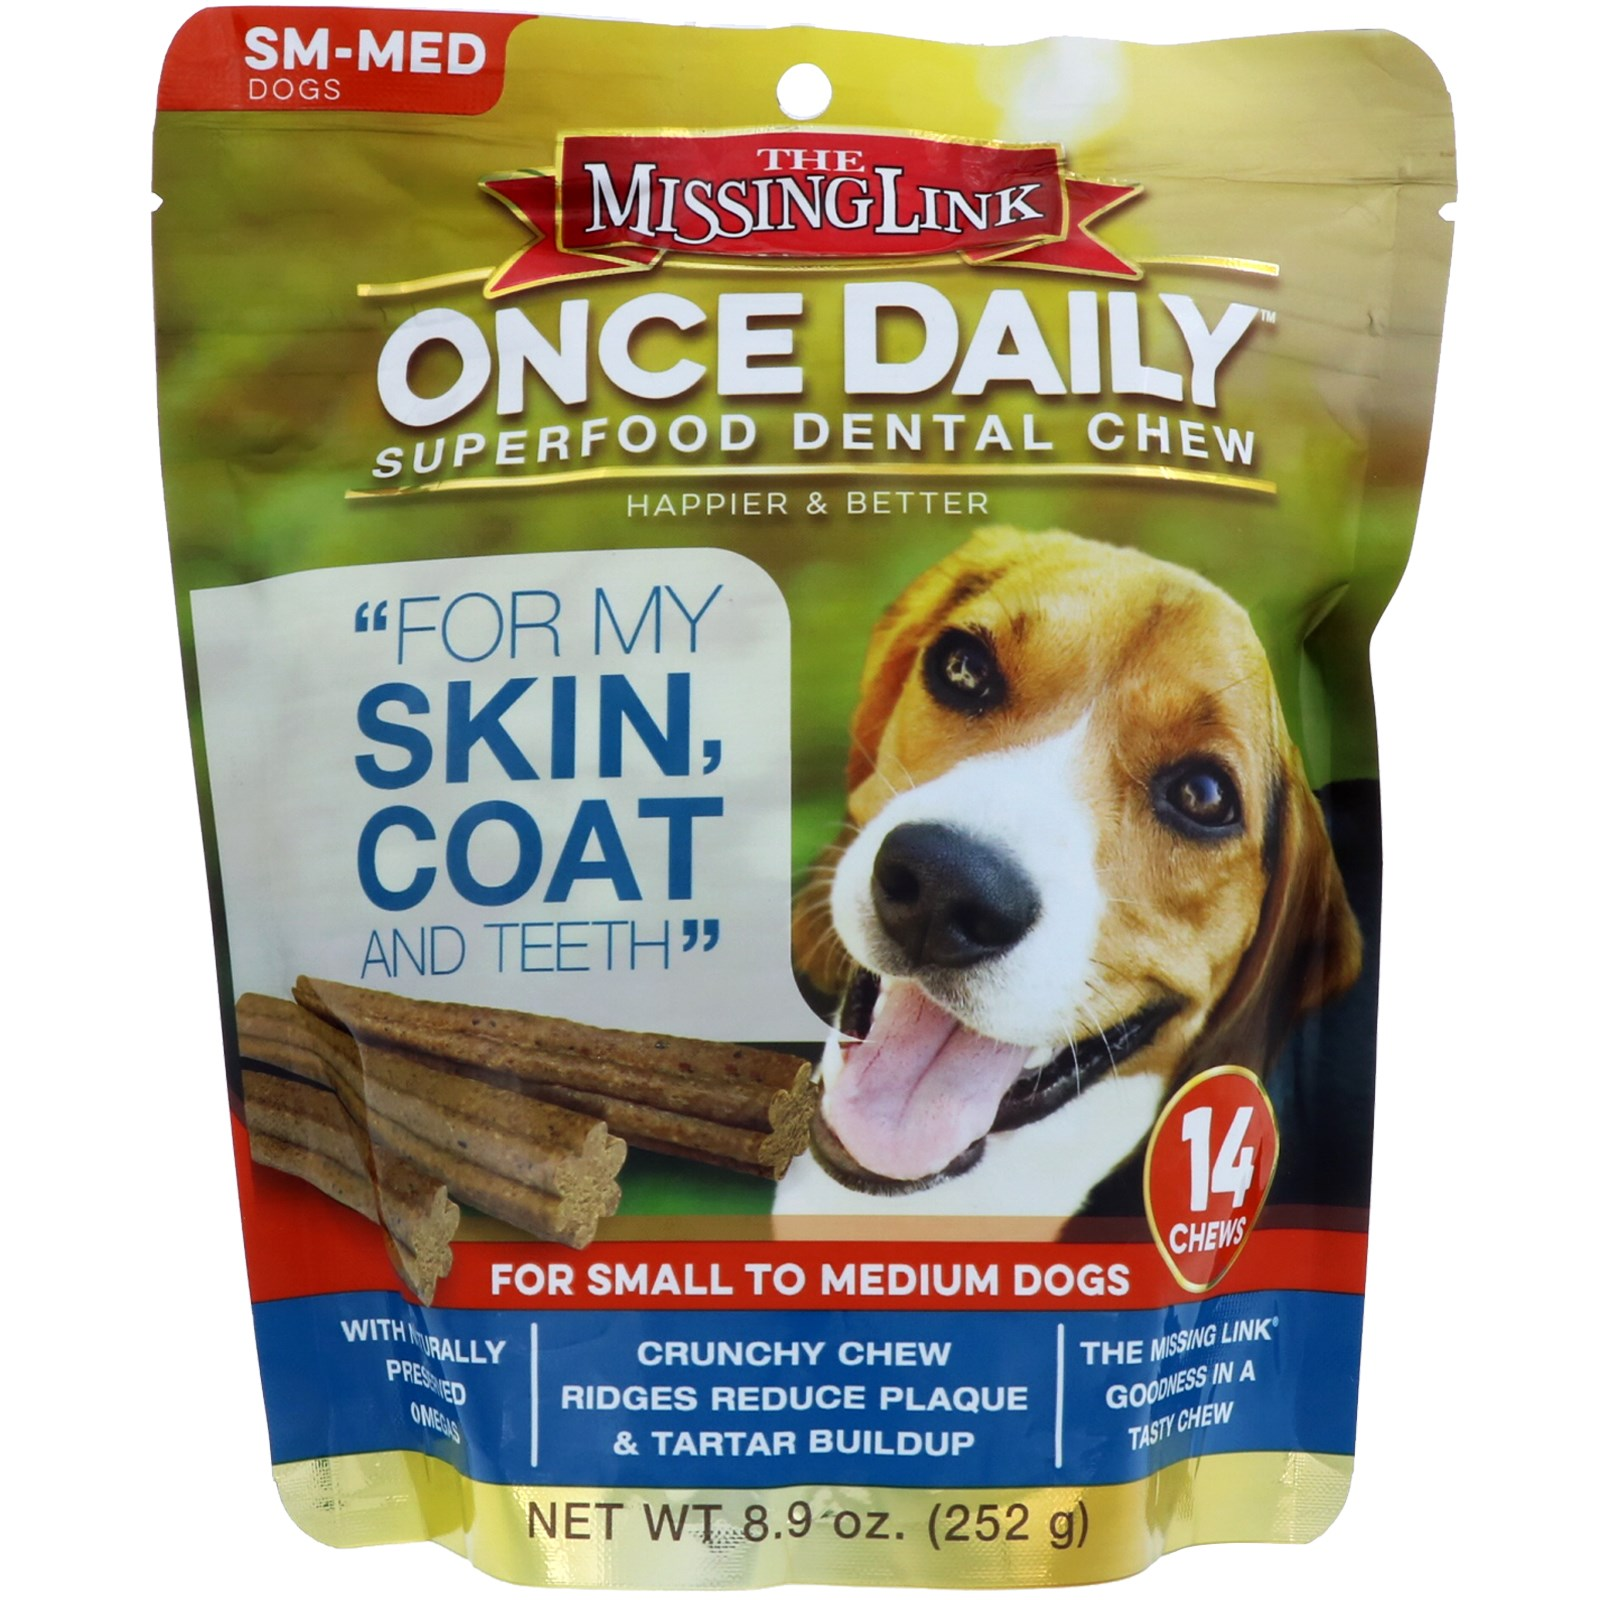 Seemly Dogs Under 5 Pounds Small To Mediumdogs Missing Once Superfood Dental Allergies Dental Chews Missing Once Superfood Dental Small To Dental Chews Dogs bark post Dental Chews For Dogs